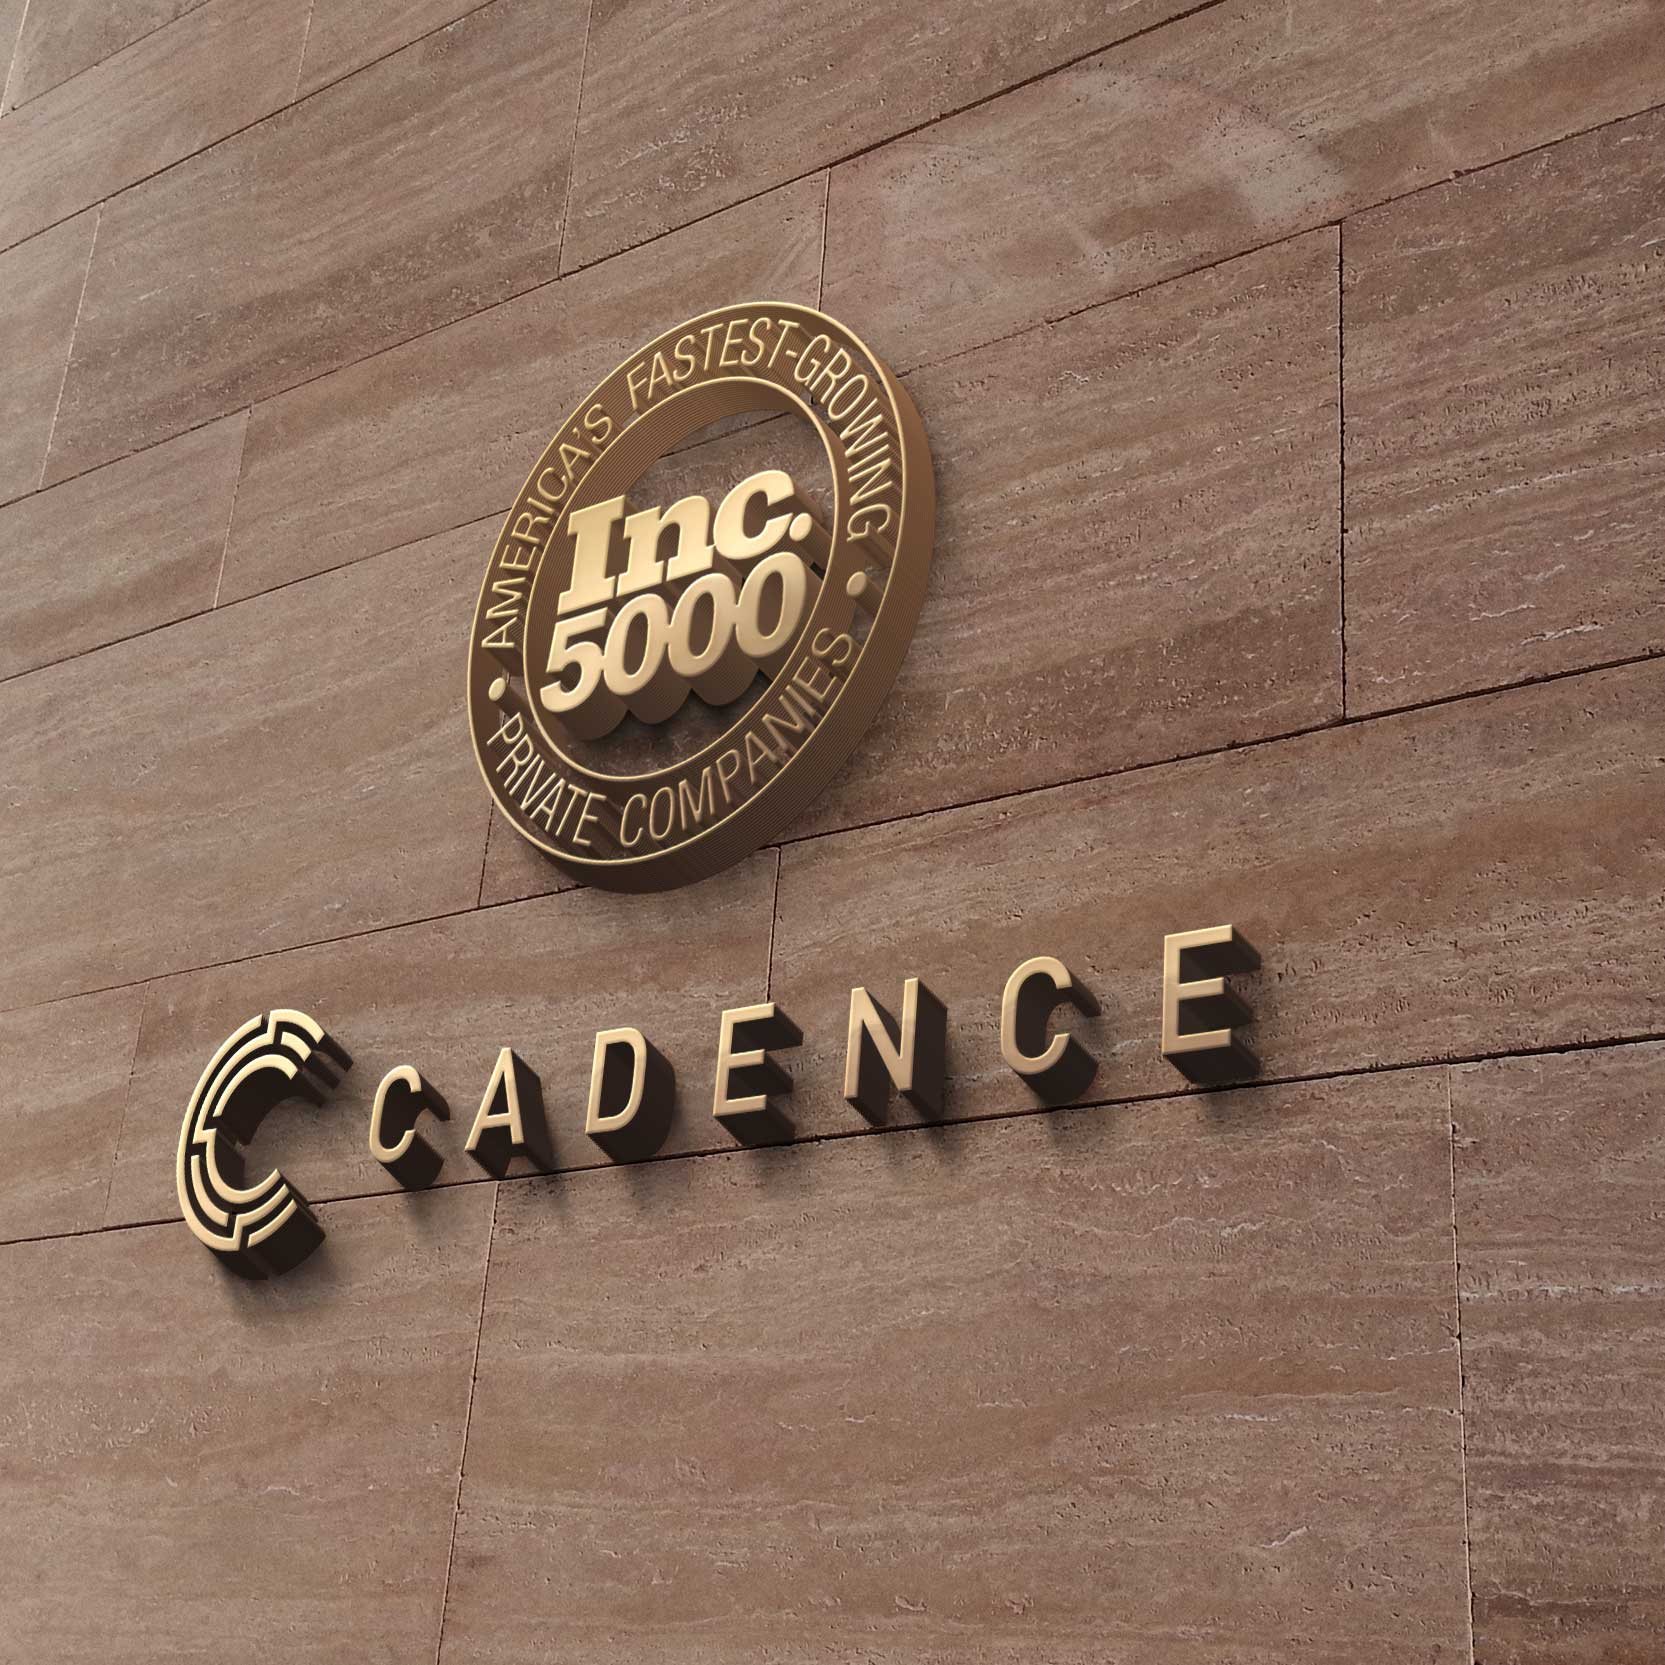 Third Time's the Charm:  Inc. 5000 Lists Us Again, Validates the Cadence Way of Doing Business